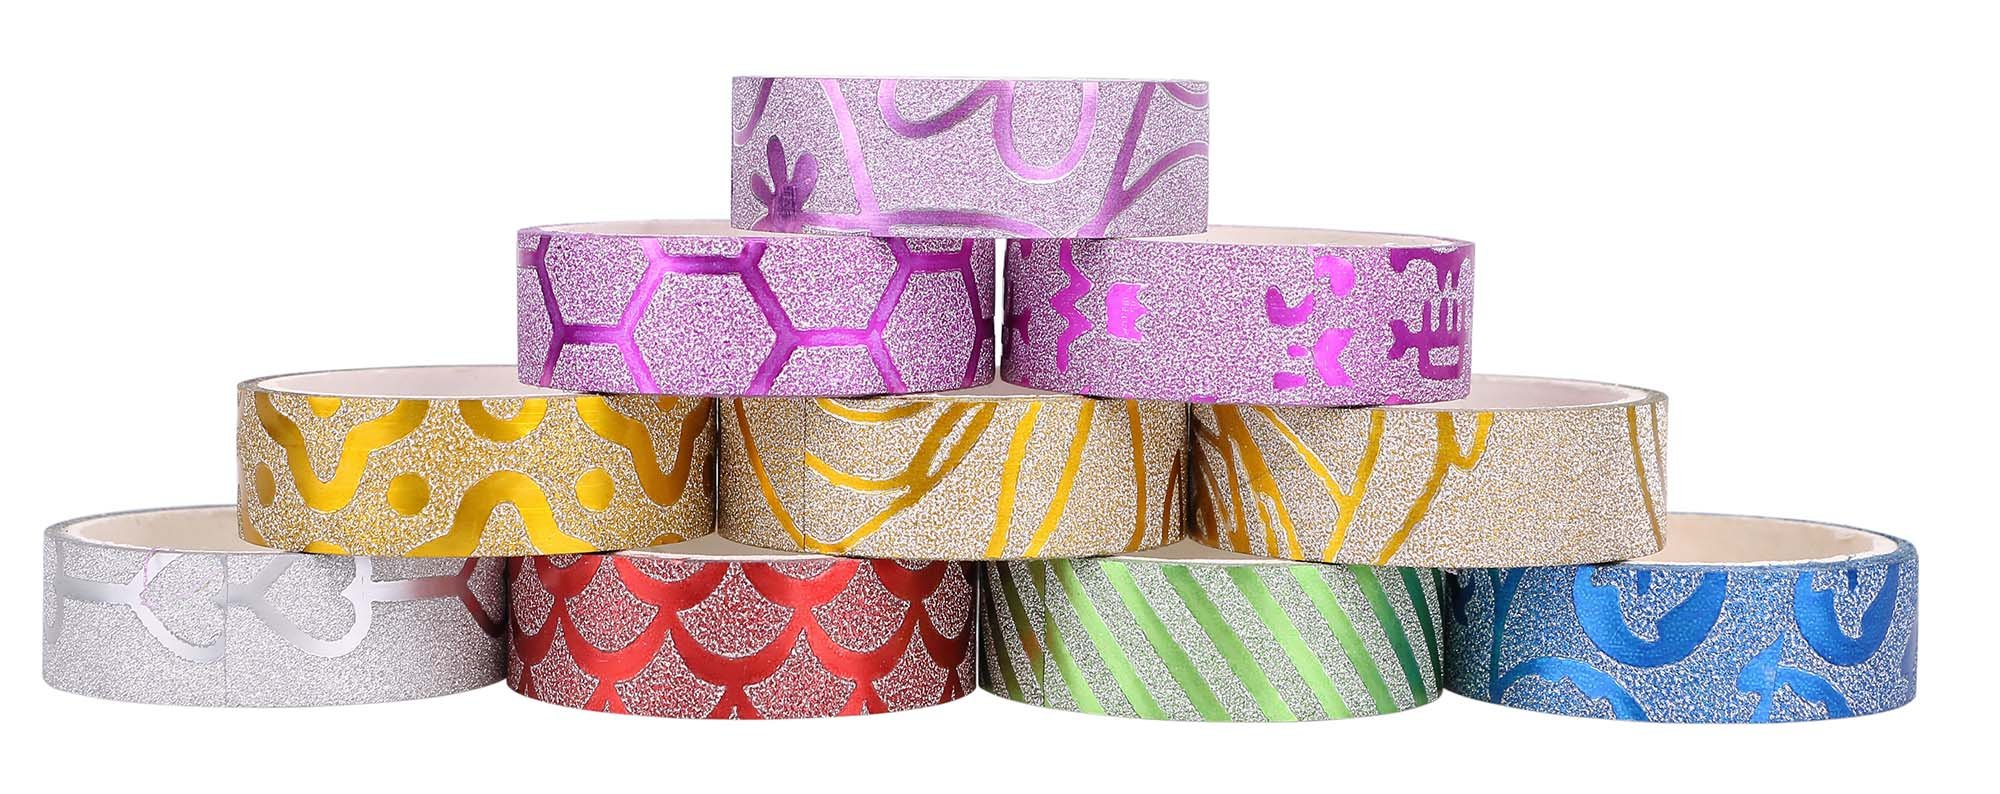 20 Pack Glitter Washi Masking/Craft Tape Set, For Bullet Journal, Decoration, Gift Wrapping, and DIY